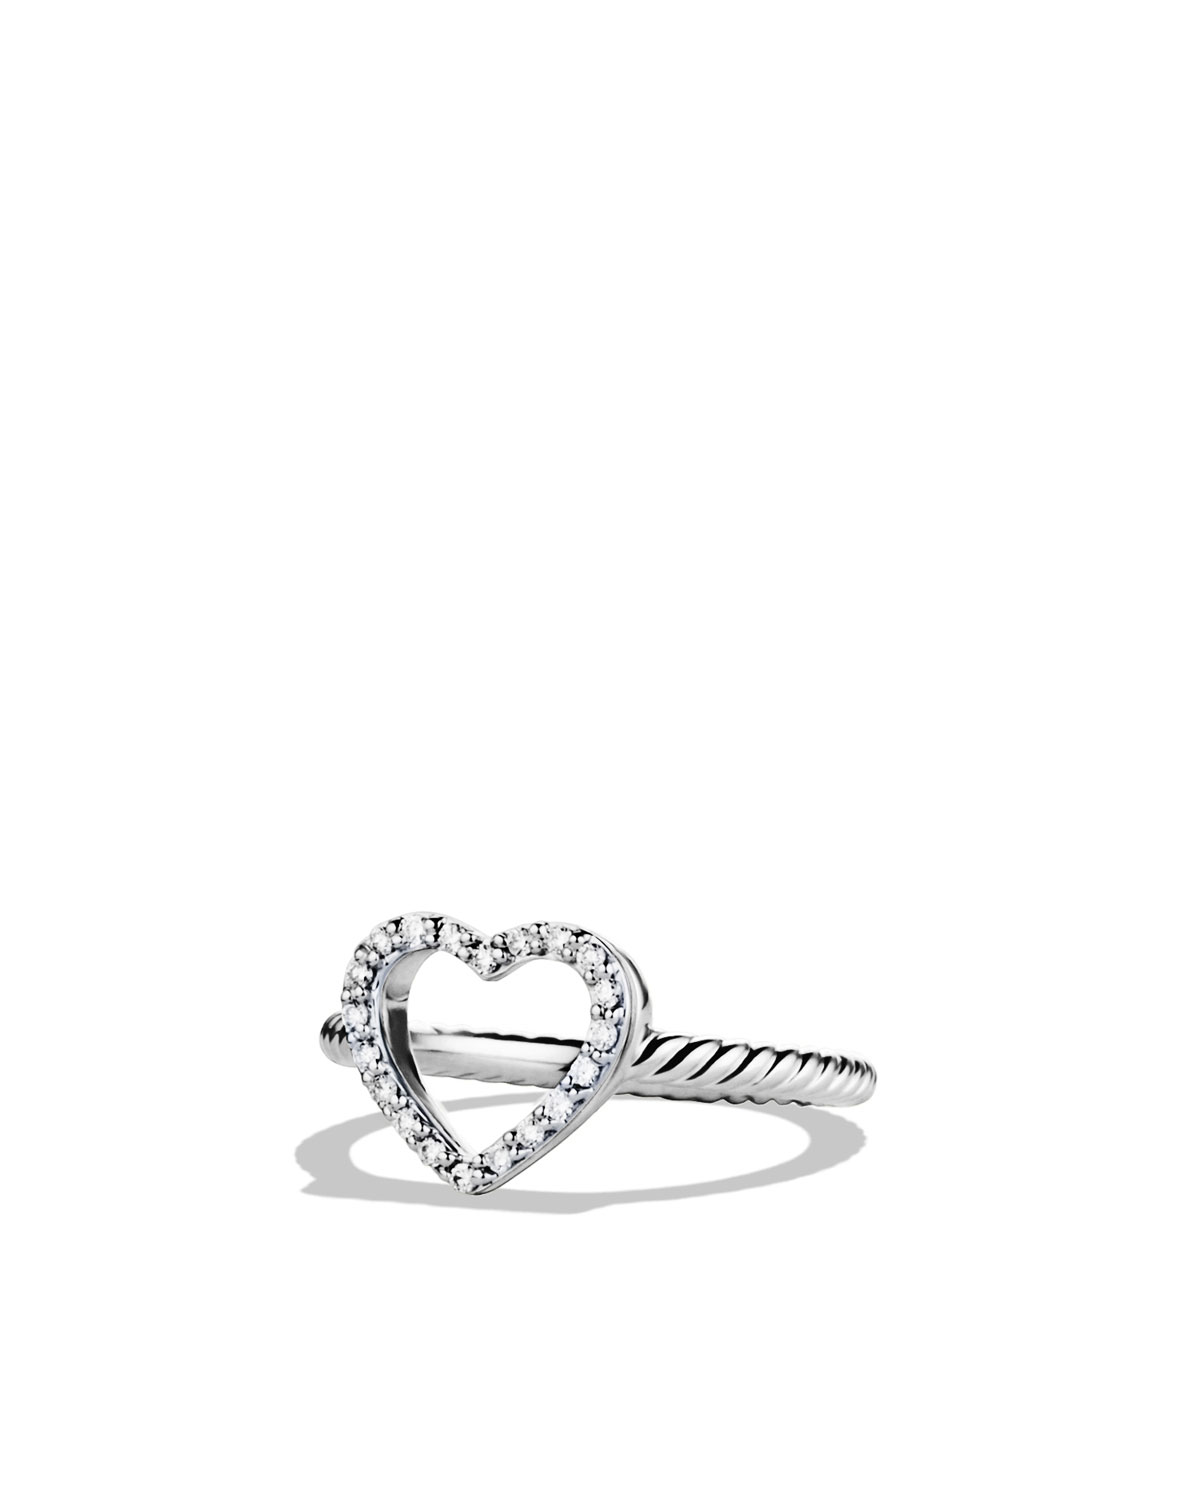 Cable Collectibles Heart Ring with Diamonds - David Yurman